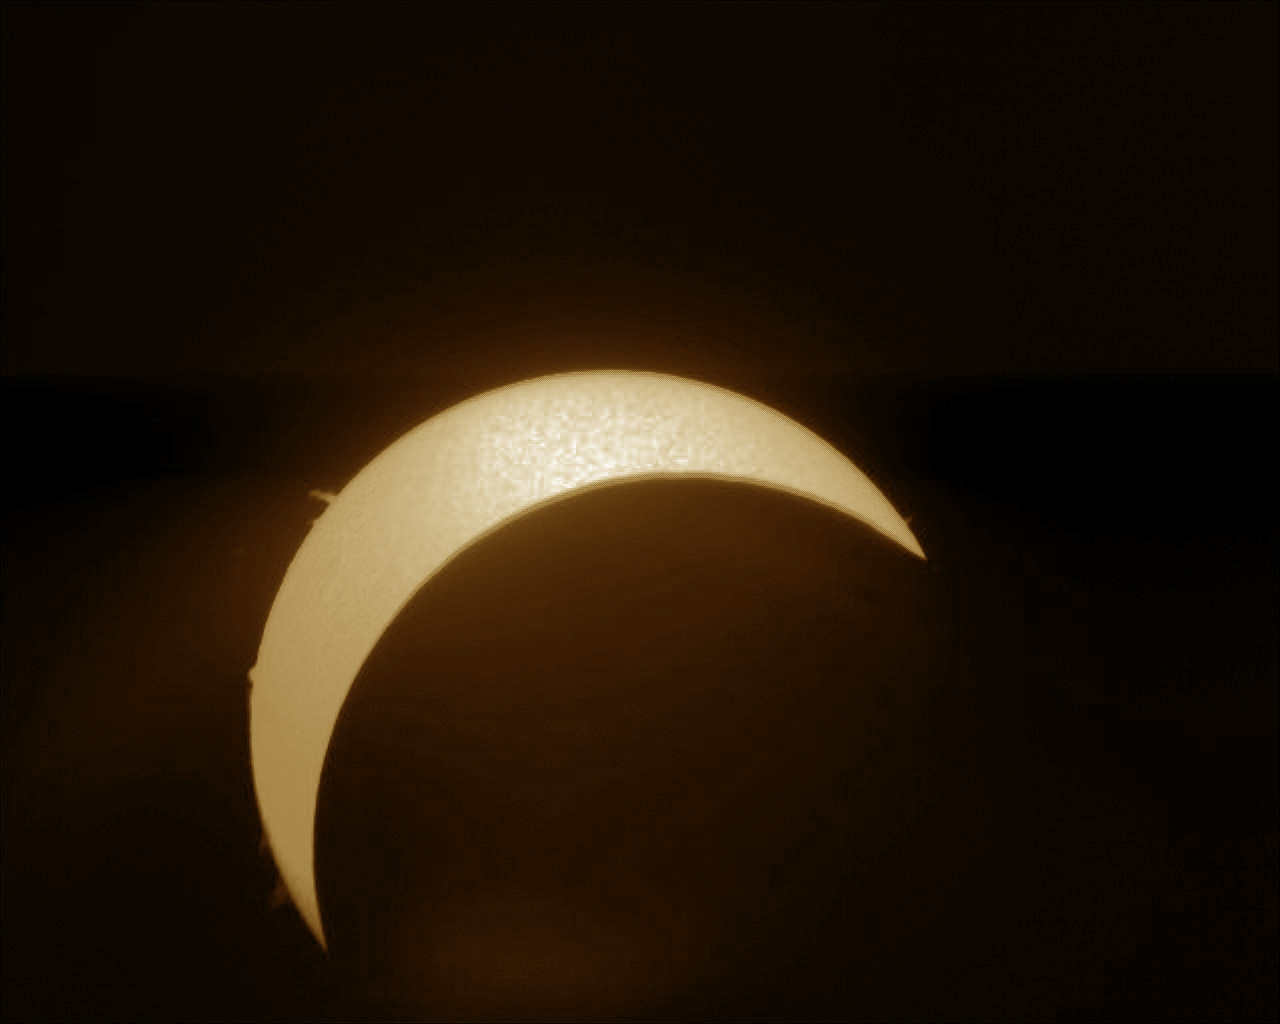 Partial eclipse from the Leighton Observatory